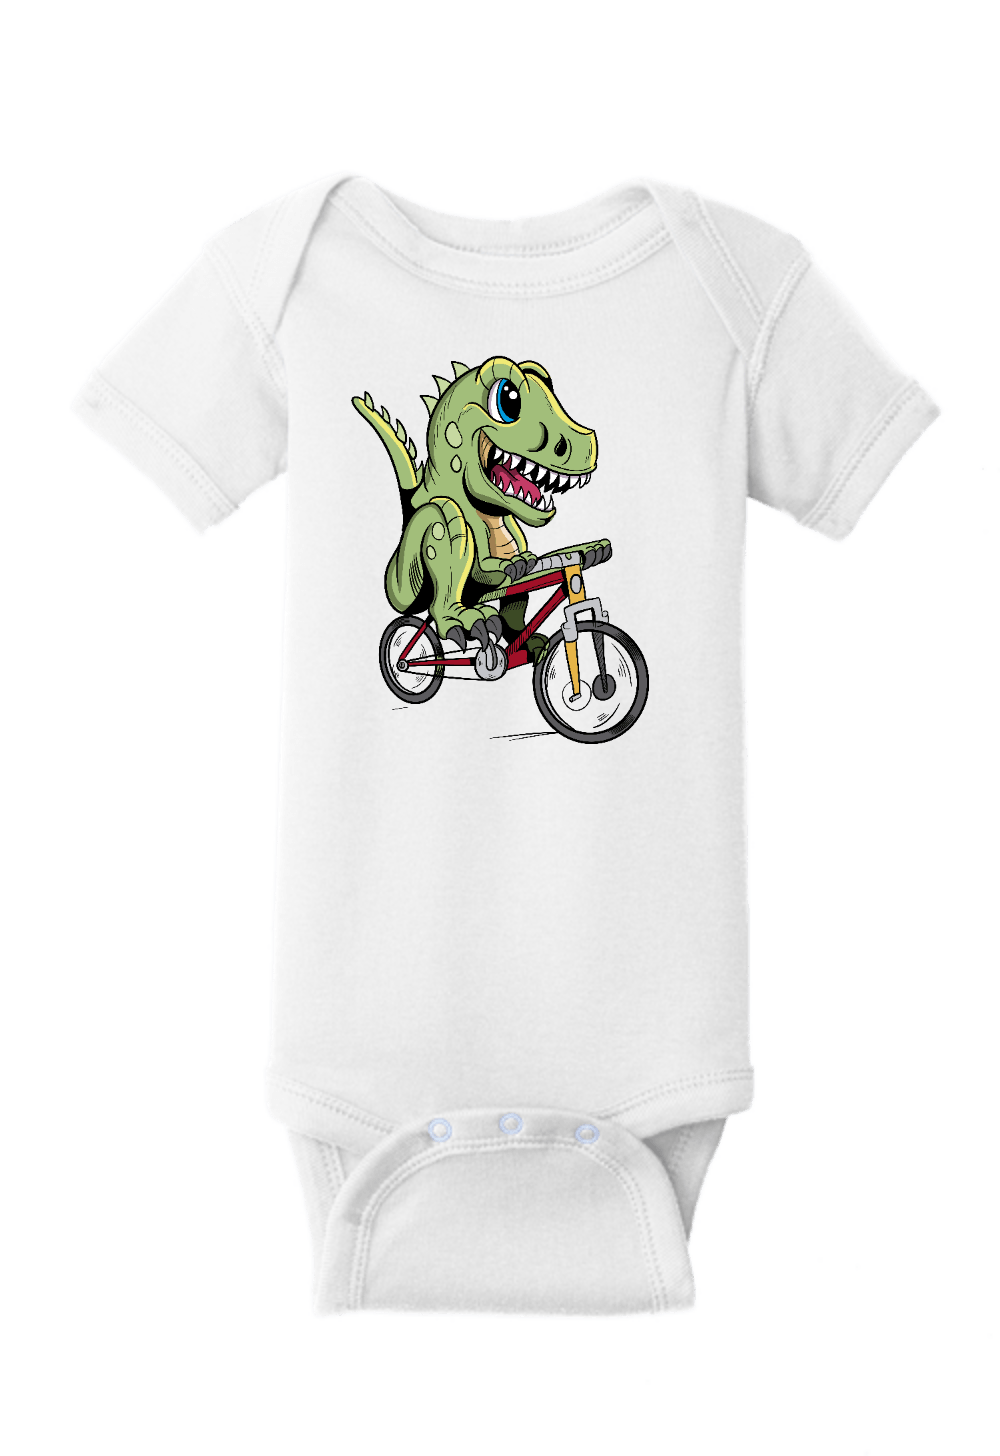 Dinosaur Riding a Bike Onesie